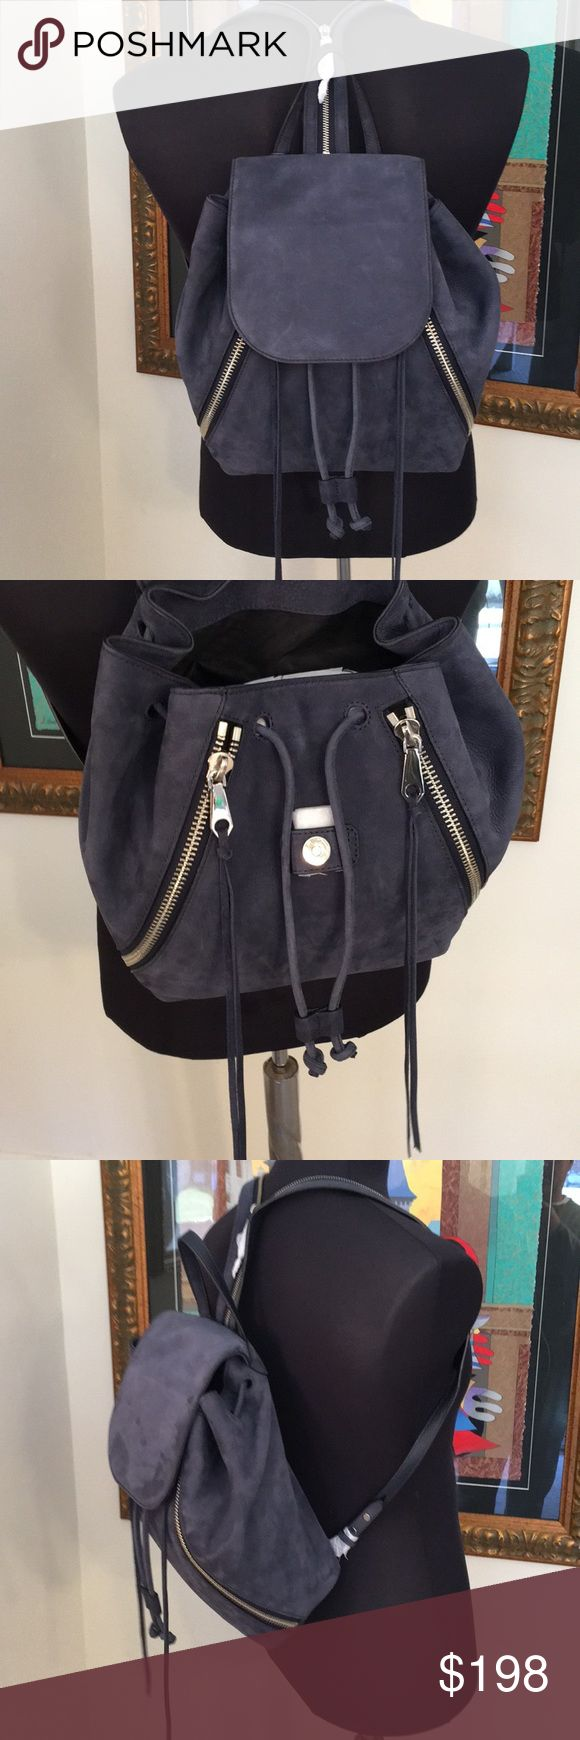 🆕REBECCA MINKOFF LARGE SUEDE BACKPACK 💯AUTH 🆕REBECCA MINKOFF LARGE SUEDE BACKPACK 💯AUTHENTIC. SO PRETTY AND STYLISH ALWAYS ON TREND. NEW WITH TAGS. IT HAS TWO OUTSIDE POCKETS. IT CAN BE ONE STRAP OF UNZIPPED TO BE TWO. THE COLOR IS CALLED MOON. I WOULD SAY IT IS A GRAYISH BLUE. WHEN FULLY OPENED IT IS 15 INCHES WIDE BY 12 INCHES TALL. SUCH A LOVELY SODT SUEDE BAG. THE COLOR VARIATION MAKES IT EVEN LOVELIER! Rebecca Minkoff Bags Backpacks